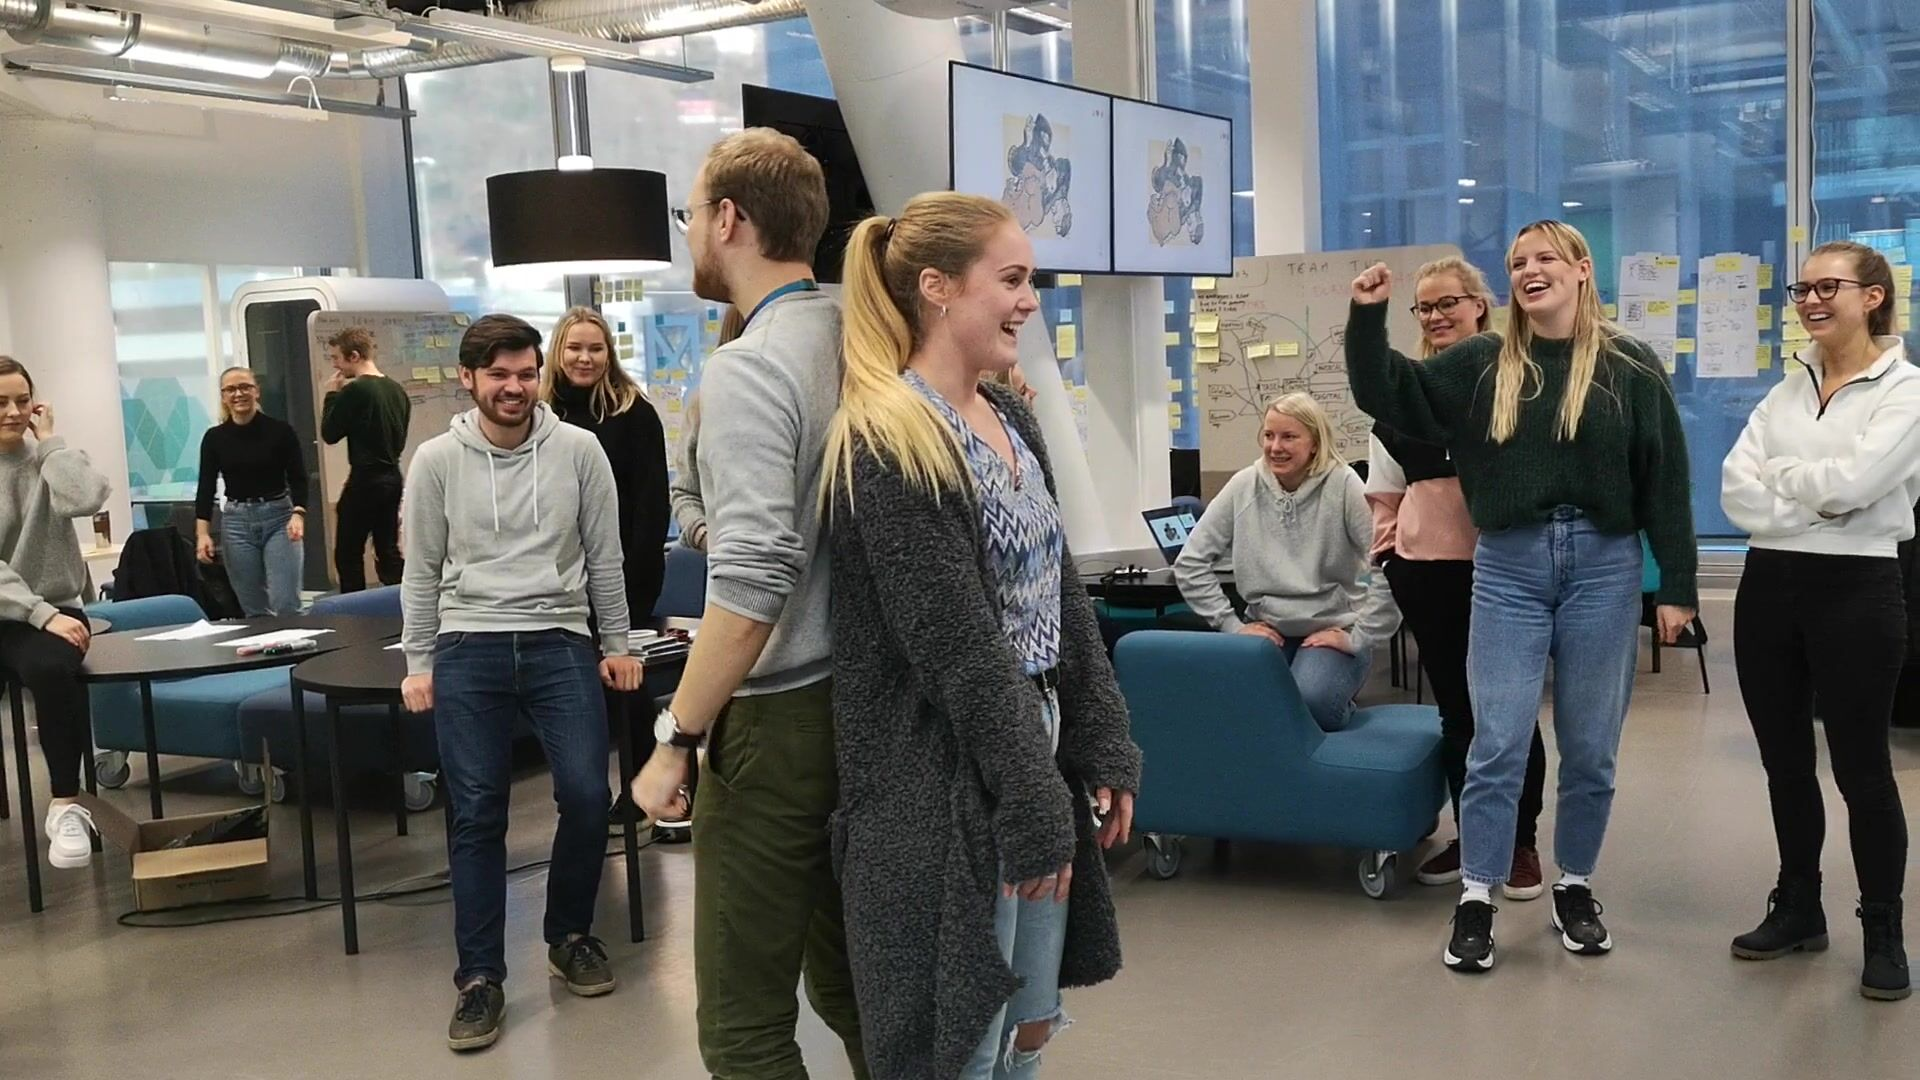 New course in innovation and entrepreneurship in Media City Bergen